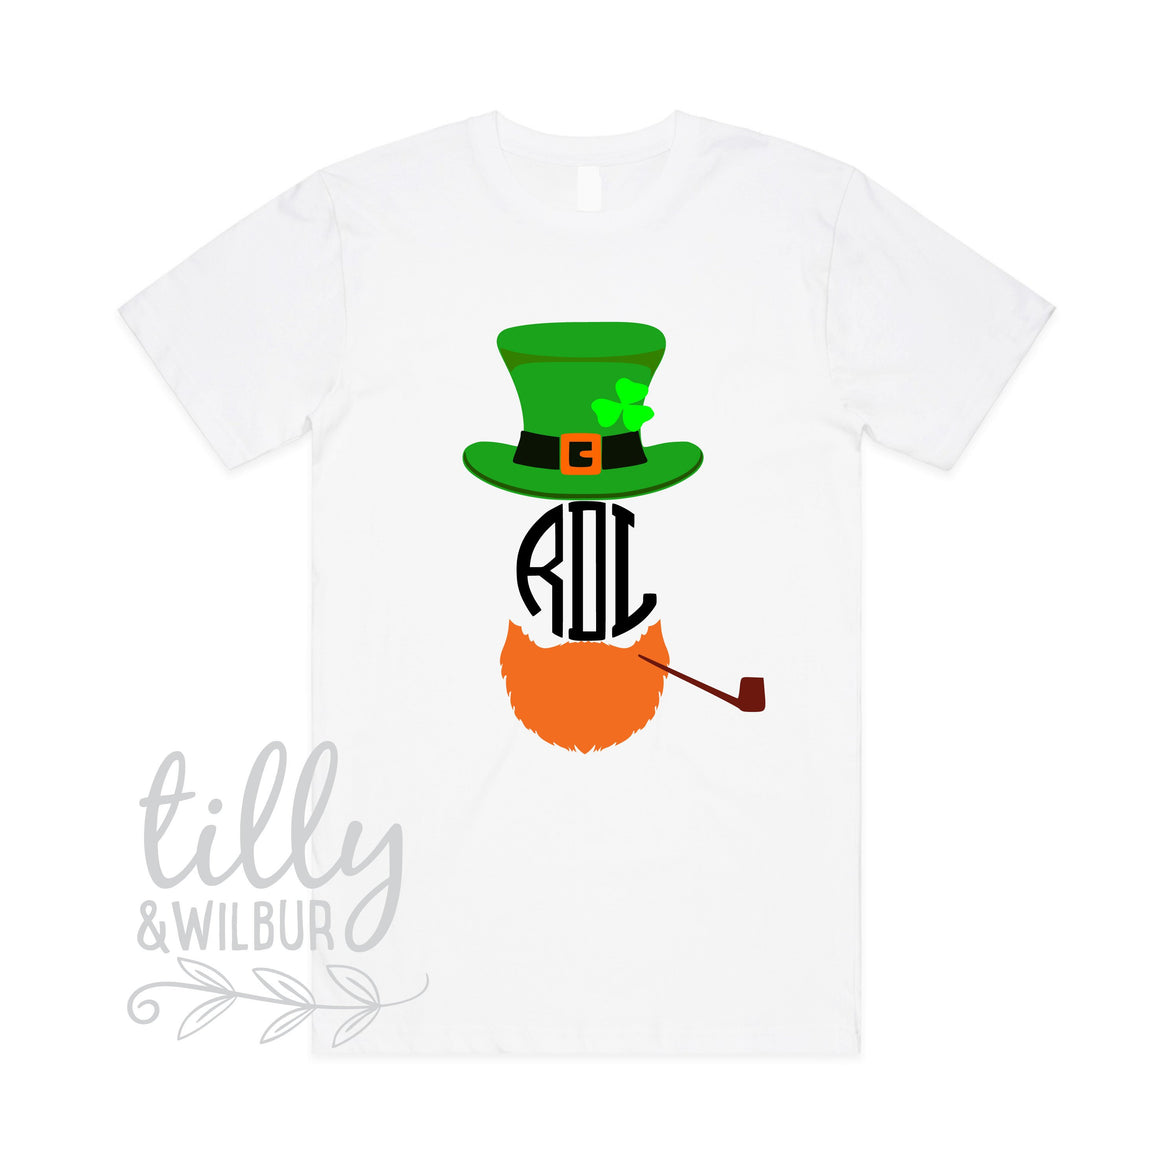 St Patrick's Day Personalised Men's T-Shirt, St Patrick's Day Shirt With Monogram Initials, Happy St Paddy's Day, Ireland, St Patrick